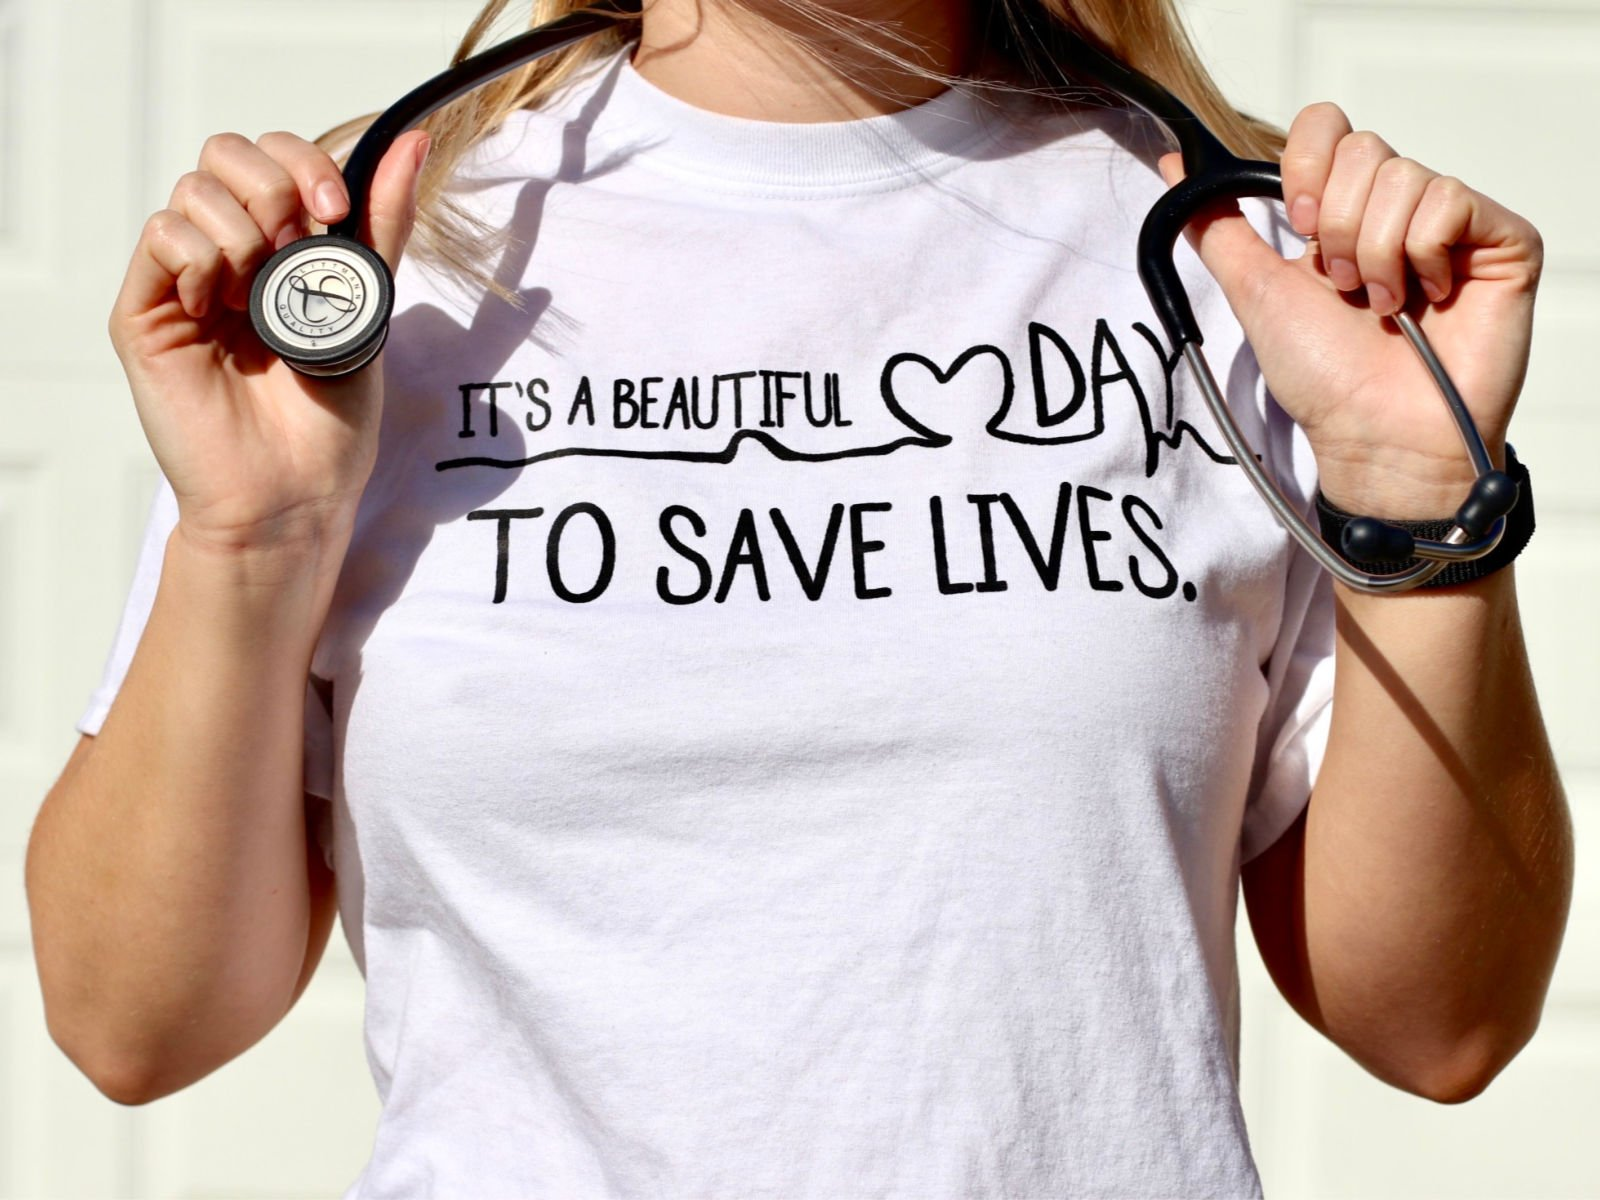 """nurse graduate wearing shirt that says, """"it's a beautiful day to save lives."""" and holding stethoscope"""